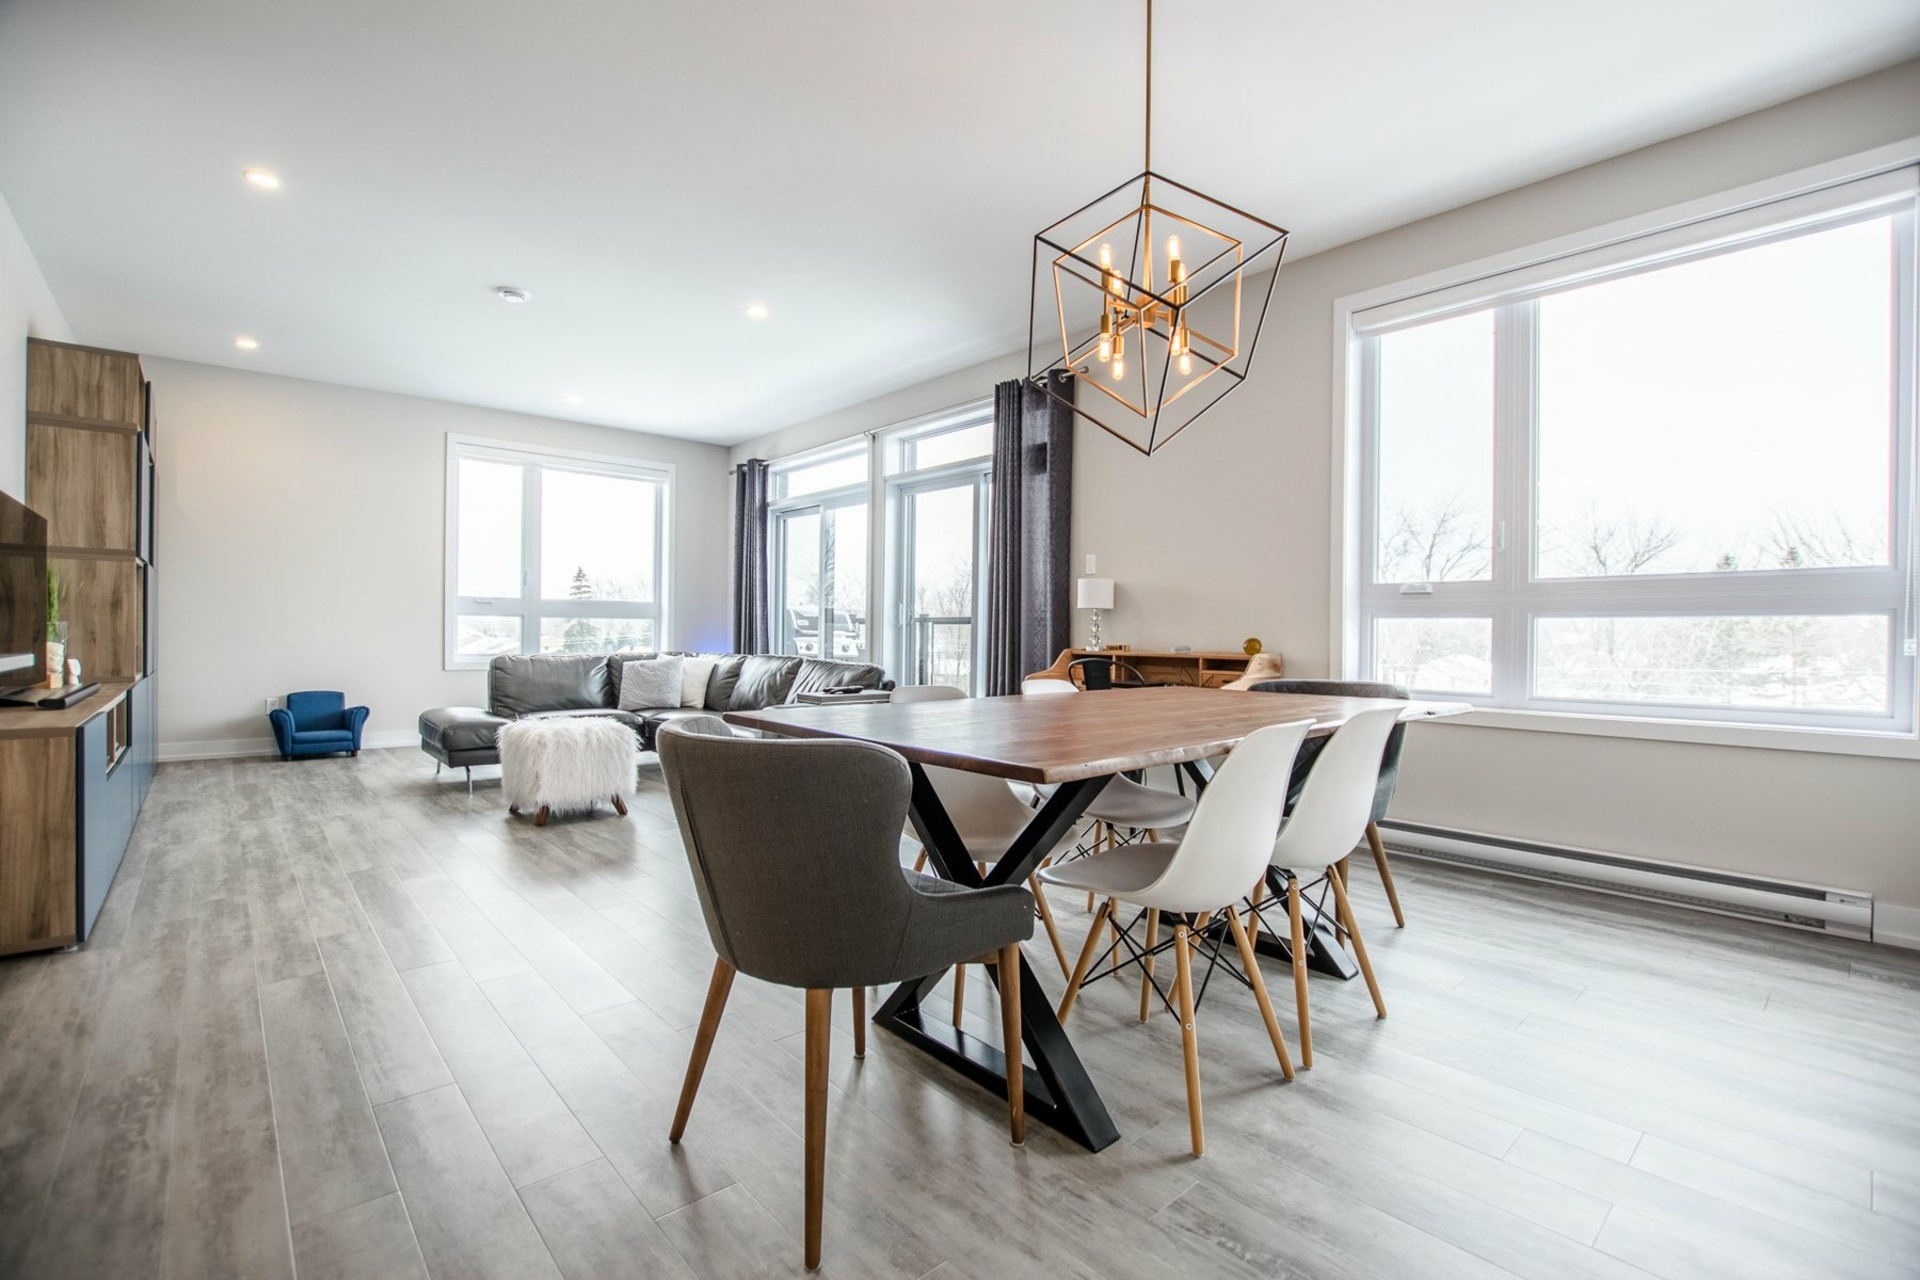 image 4 - Apartment For sale Sainte-Catherine - 6 rooms